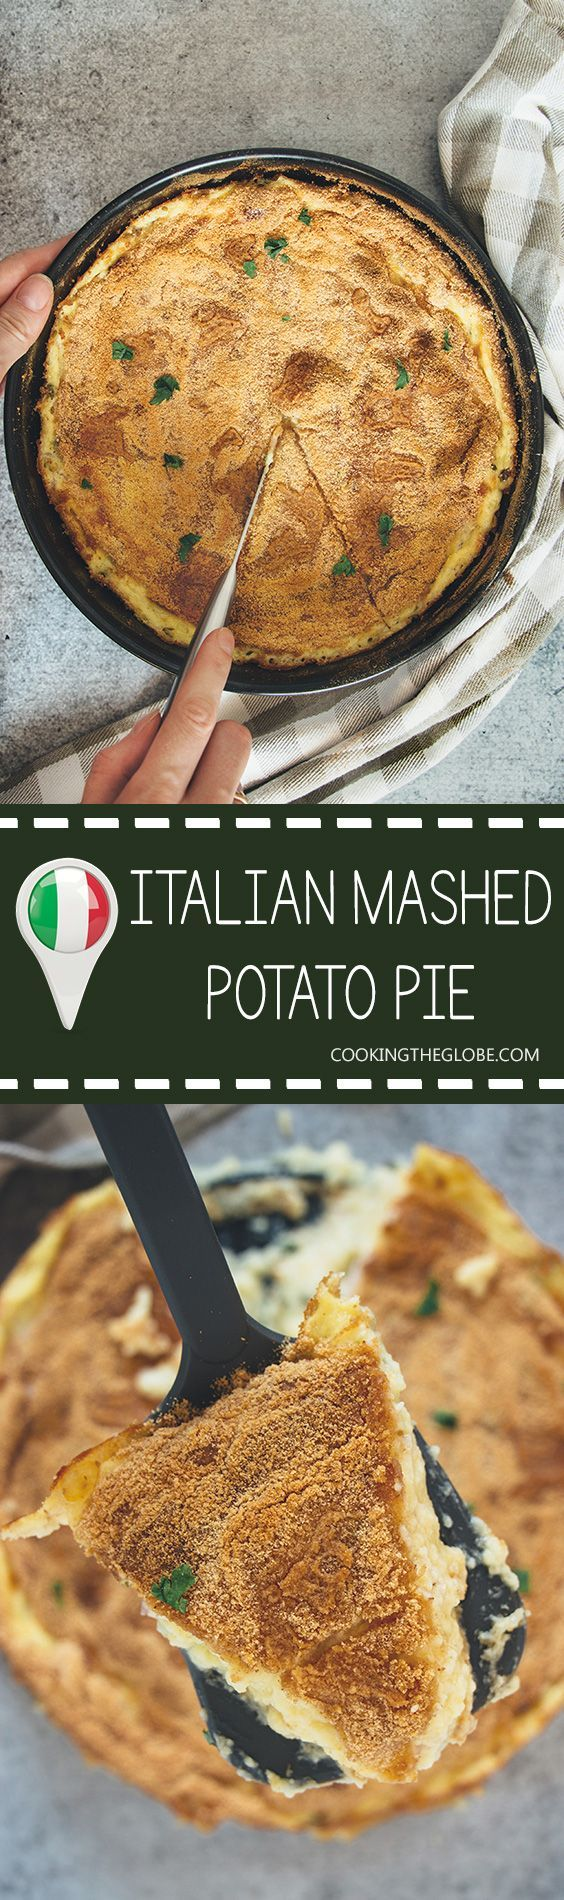 This Italian mashed potato pie is creamy, comforting, and crazy delicious. Featuring three types of cheese and two types of meat, it makes a great side or even a main dish! | cookingtheglobe.com #italianDishes